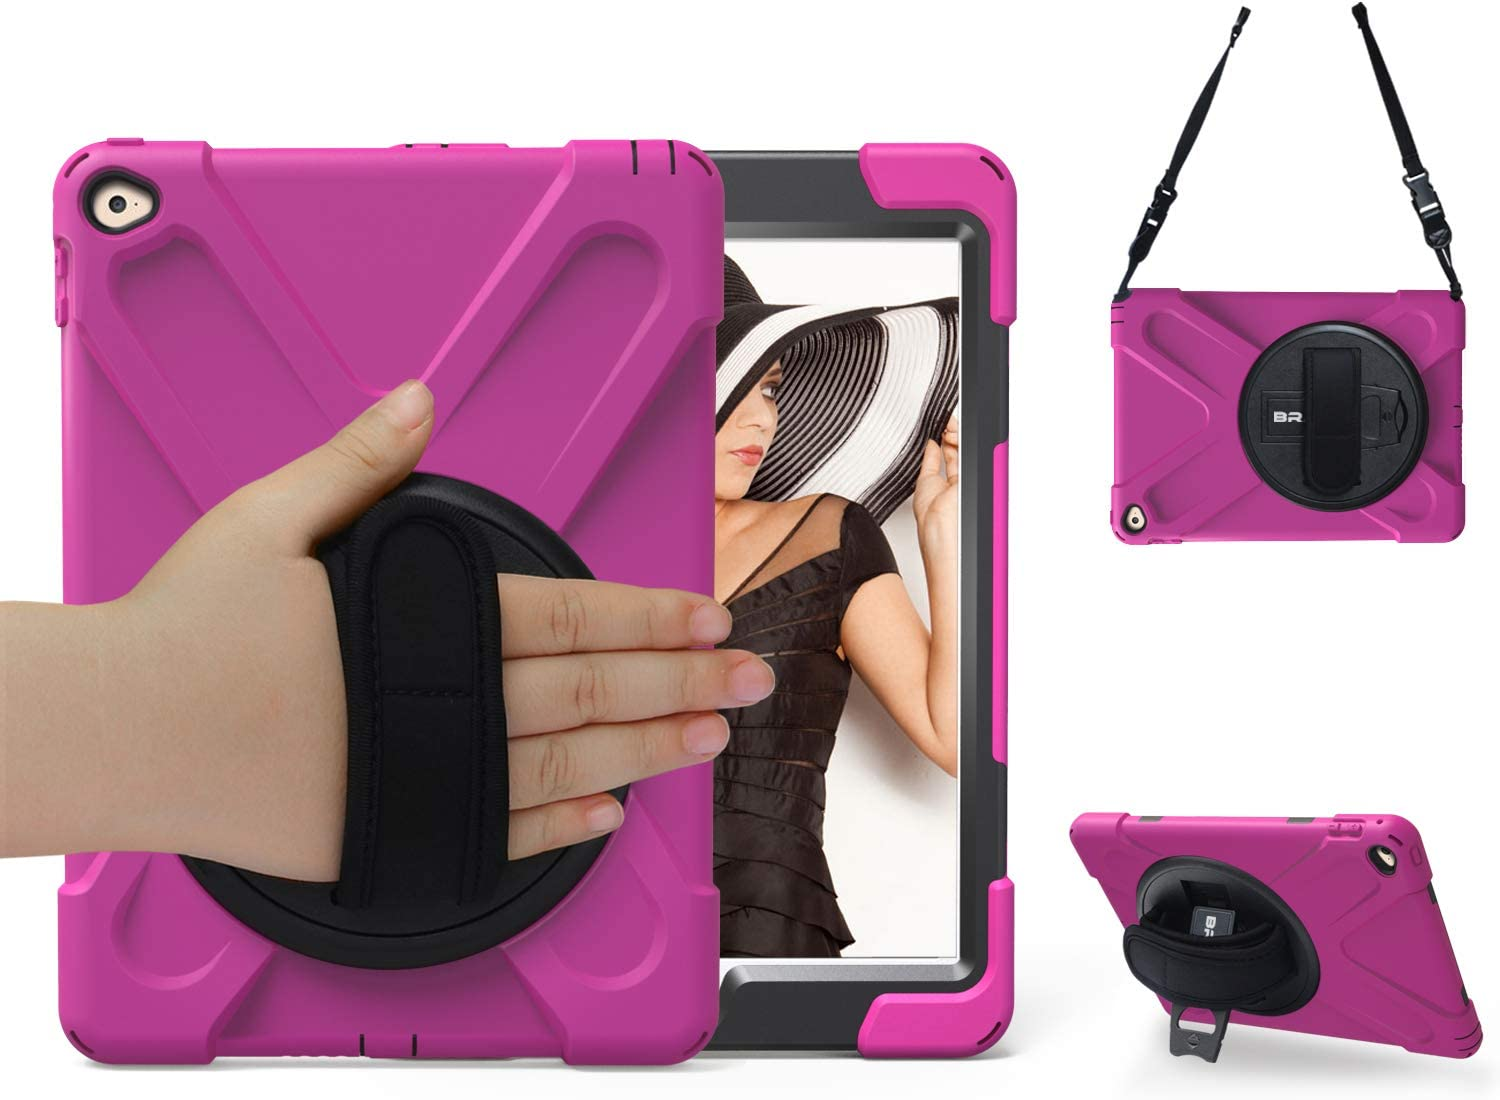 iPad Air 2 Case-BRAECN [Hybrid Shockproof Case] Rugged Triple-Layer Shock-Resistant Drop Proof Defender Case Cover with Kickstand/Hand Strap/Adjustable Shoulder Strap for iPad Air 2 Cover(Rose)